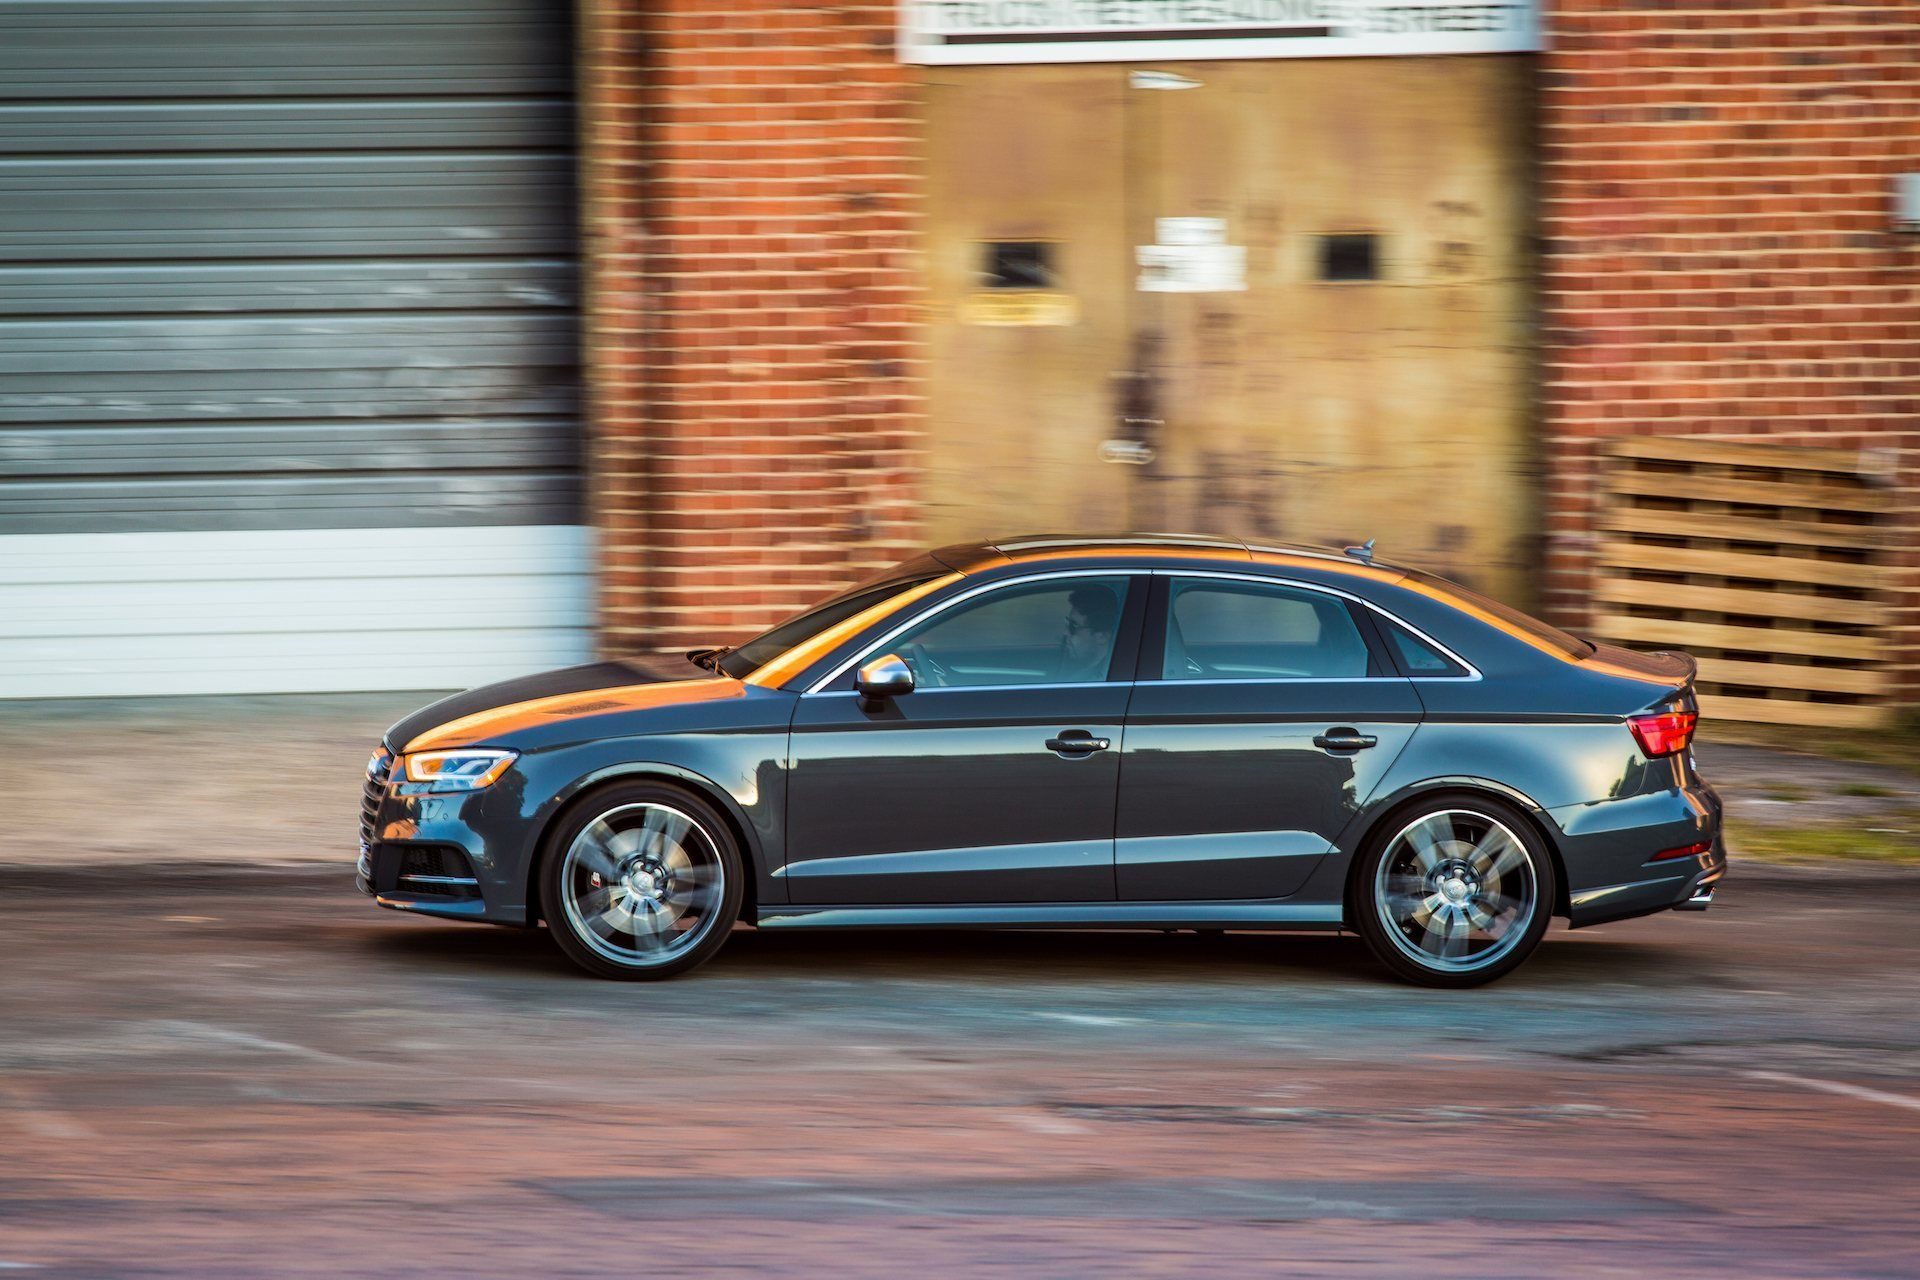 2021 audi rs5 tdi price and review in 2020  audi audi